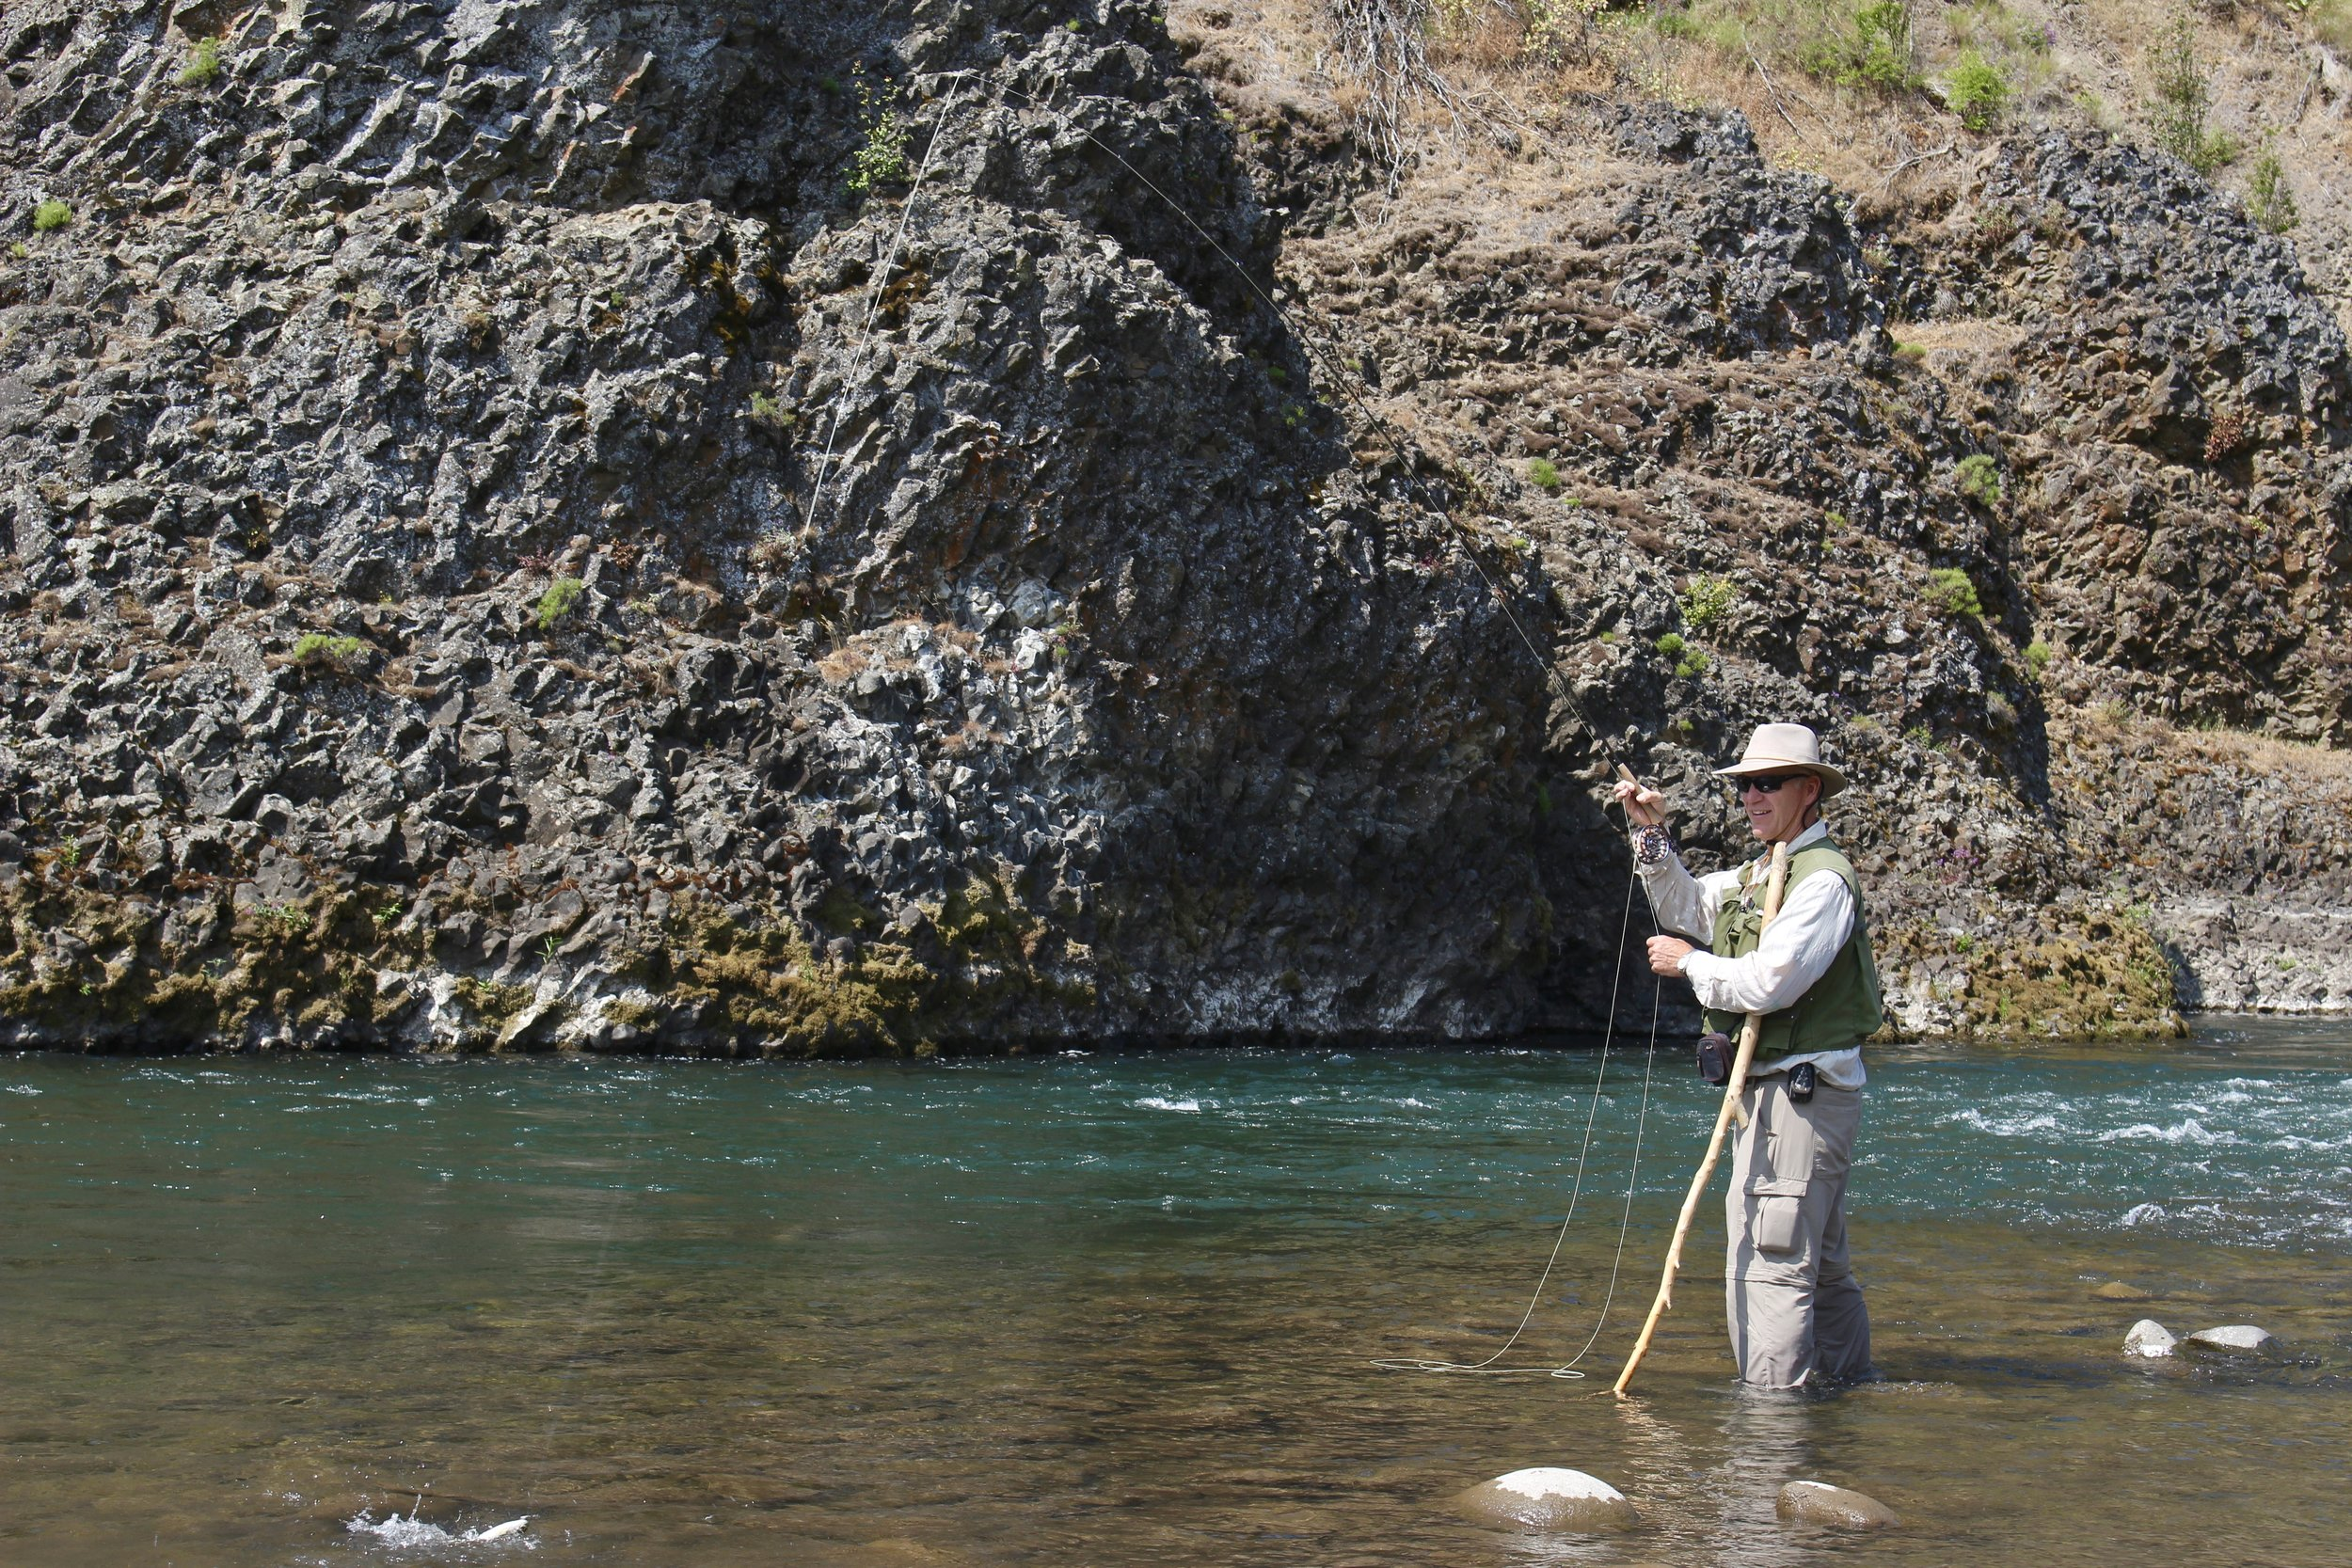 Naches River Fly Fishing - Naches River Fishing